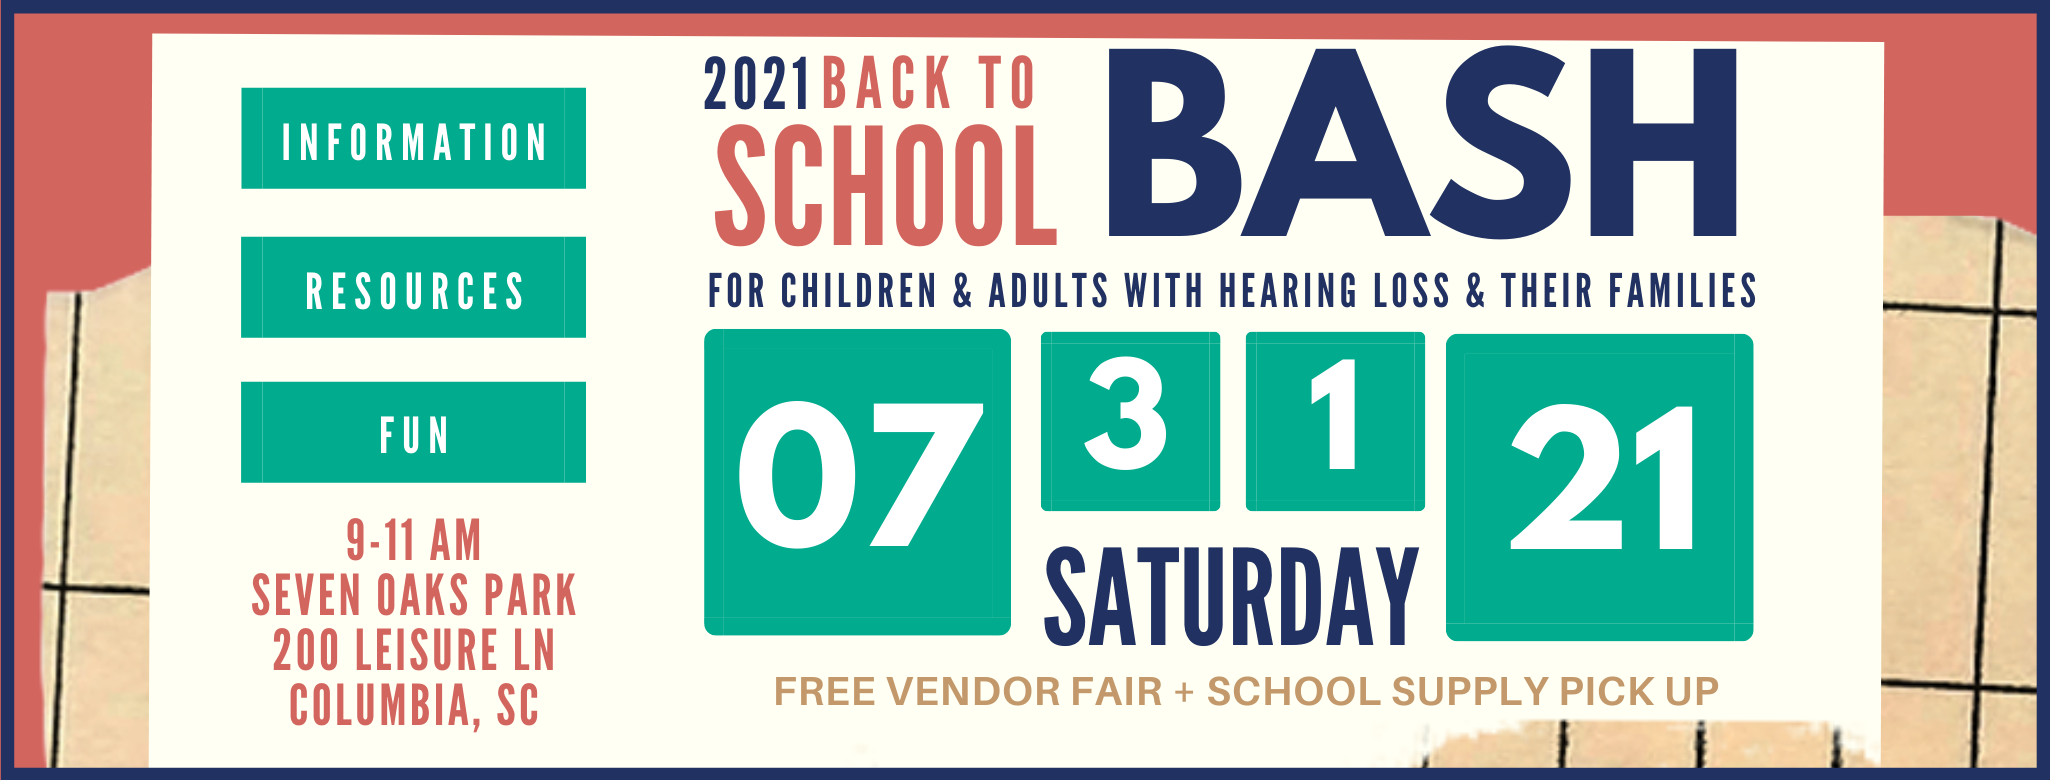 2021 Back to School Bash For Children and Adults with Hearing Loss and Their Families July 31 2021 from 9-11am at Seven Oaks Park in Columbia